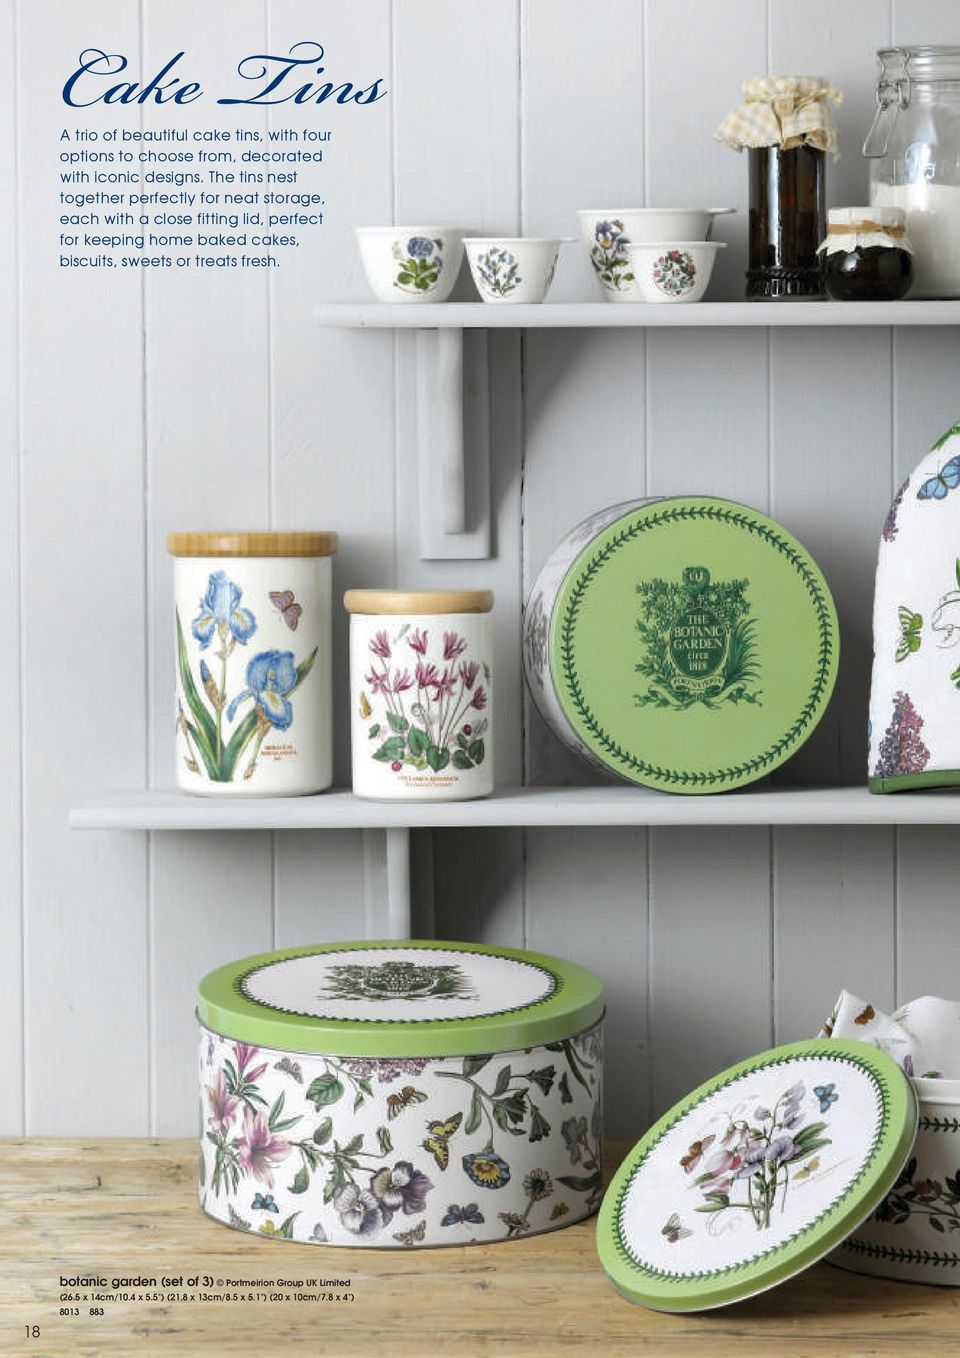 The tins nest together perfectly for neat storage, each with a close fitting lid, perfect for